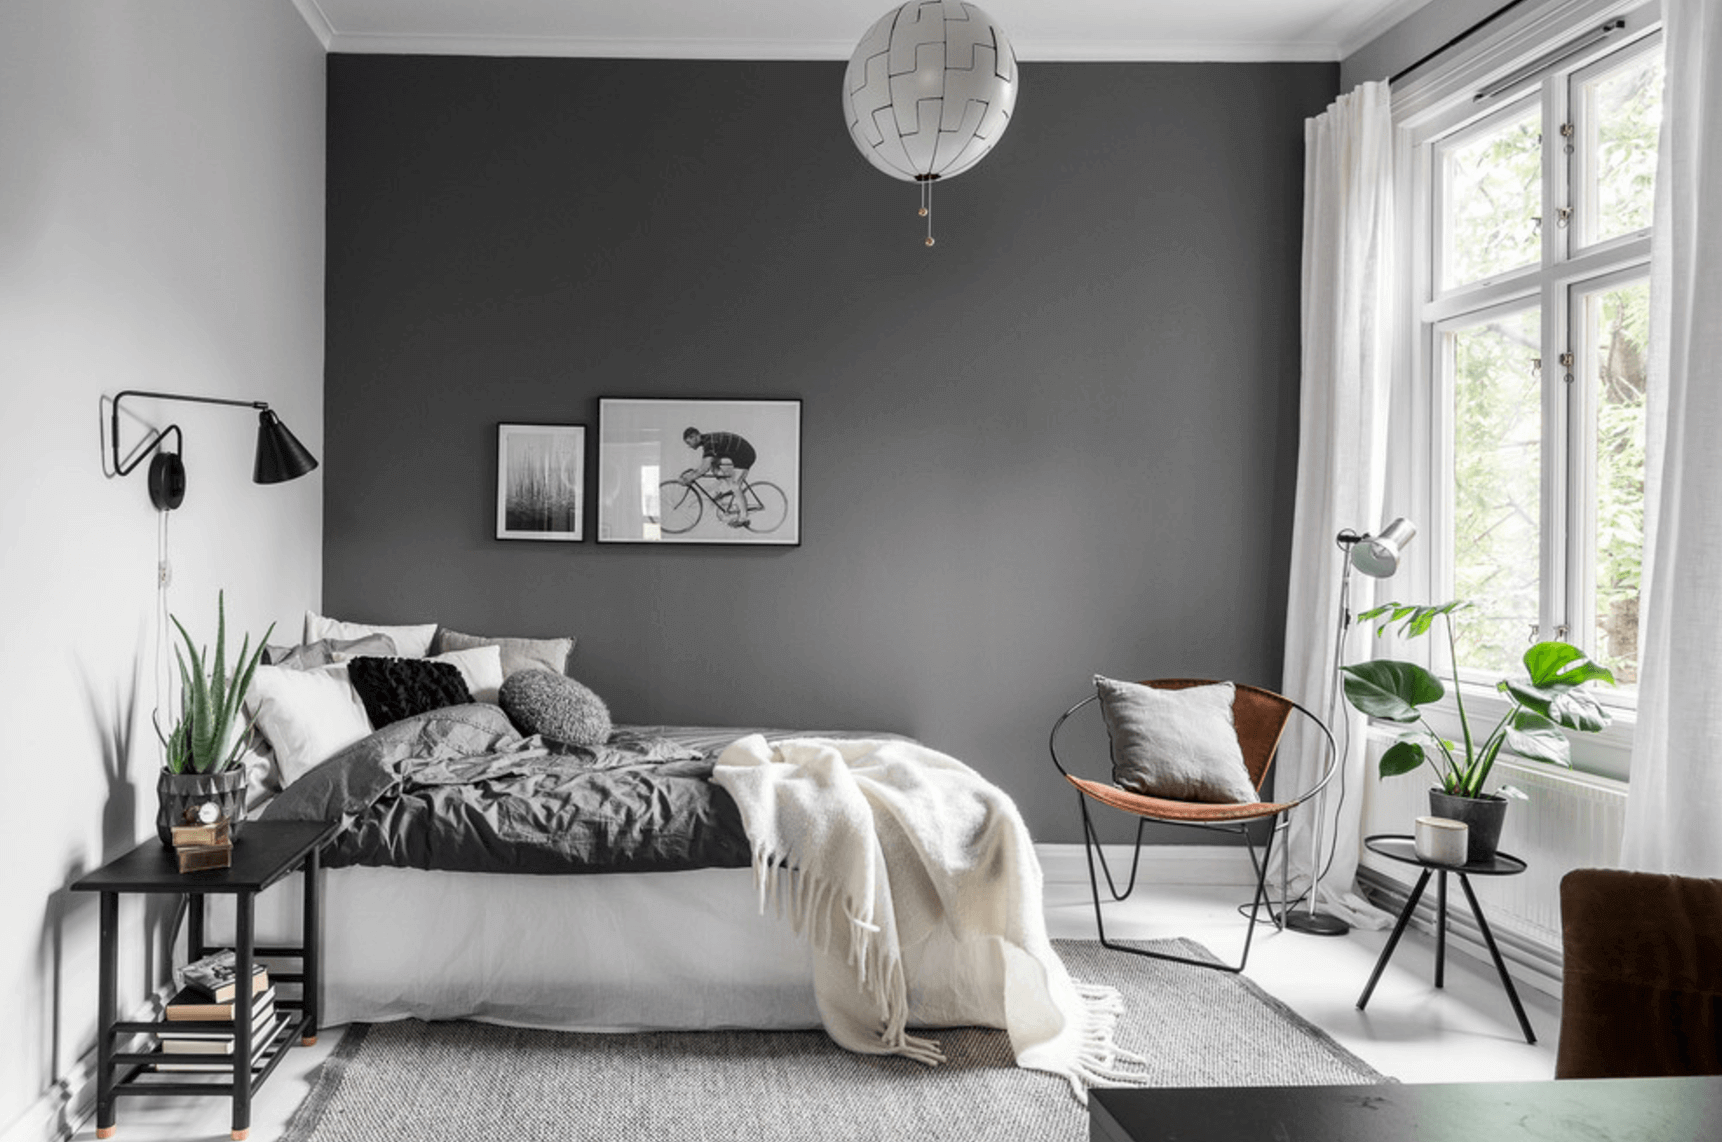 23 Cozy Grey Bedroom Ideas That You Will Adore Ikea Bedroom Design Small Room Bedroom Bedroom Interior